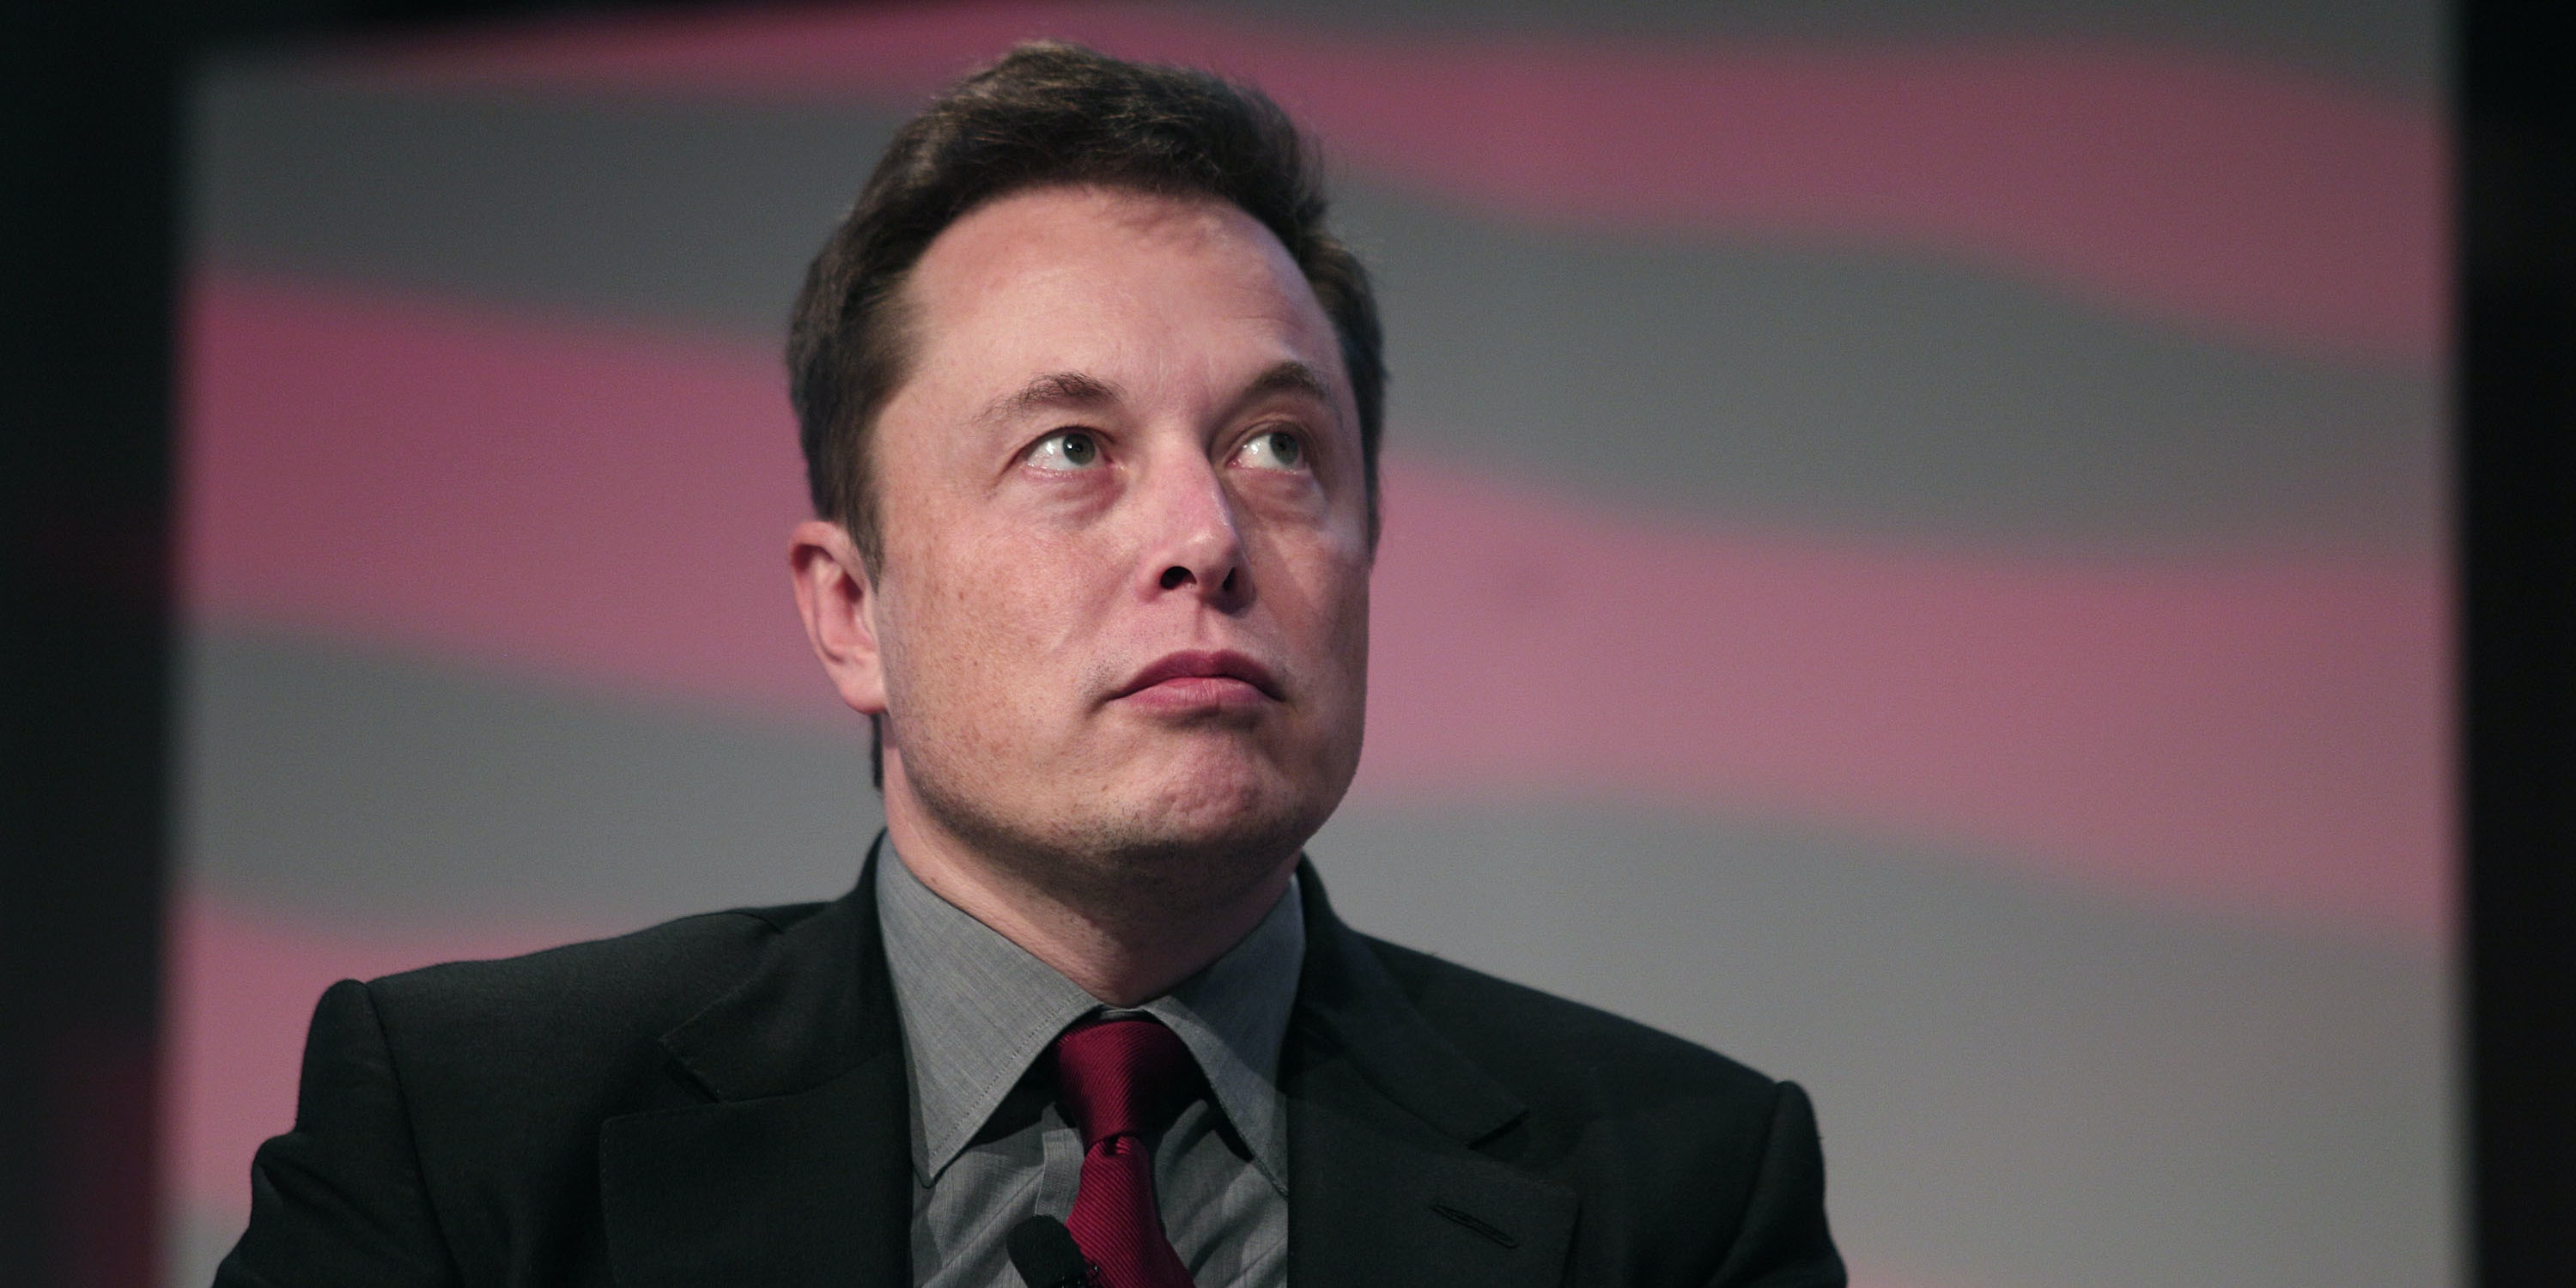 Elon Musk, co-founder and CEO of Tesla Motors, speaks at the 2015 Automotive News World Congress January 13, 2015 in Detroit, Michigan. More than 5,000 journalists from around the world will see approximately 45 new vehicles unveiled during the 2015 NAIAS, which opens to the public January 17 and concludes January 25.